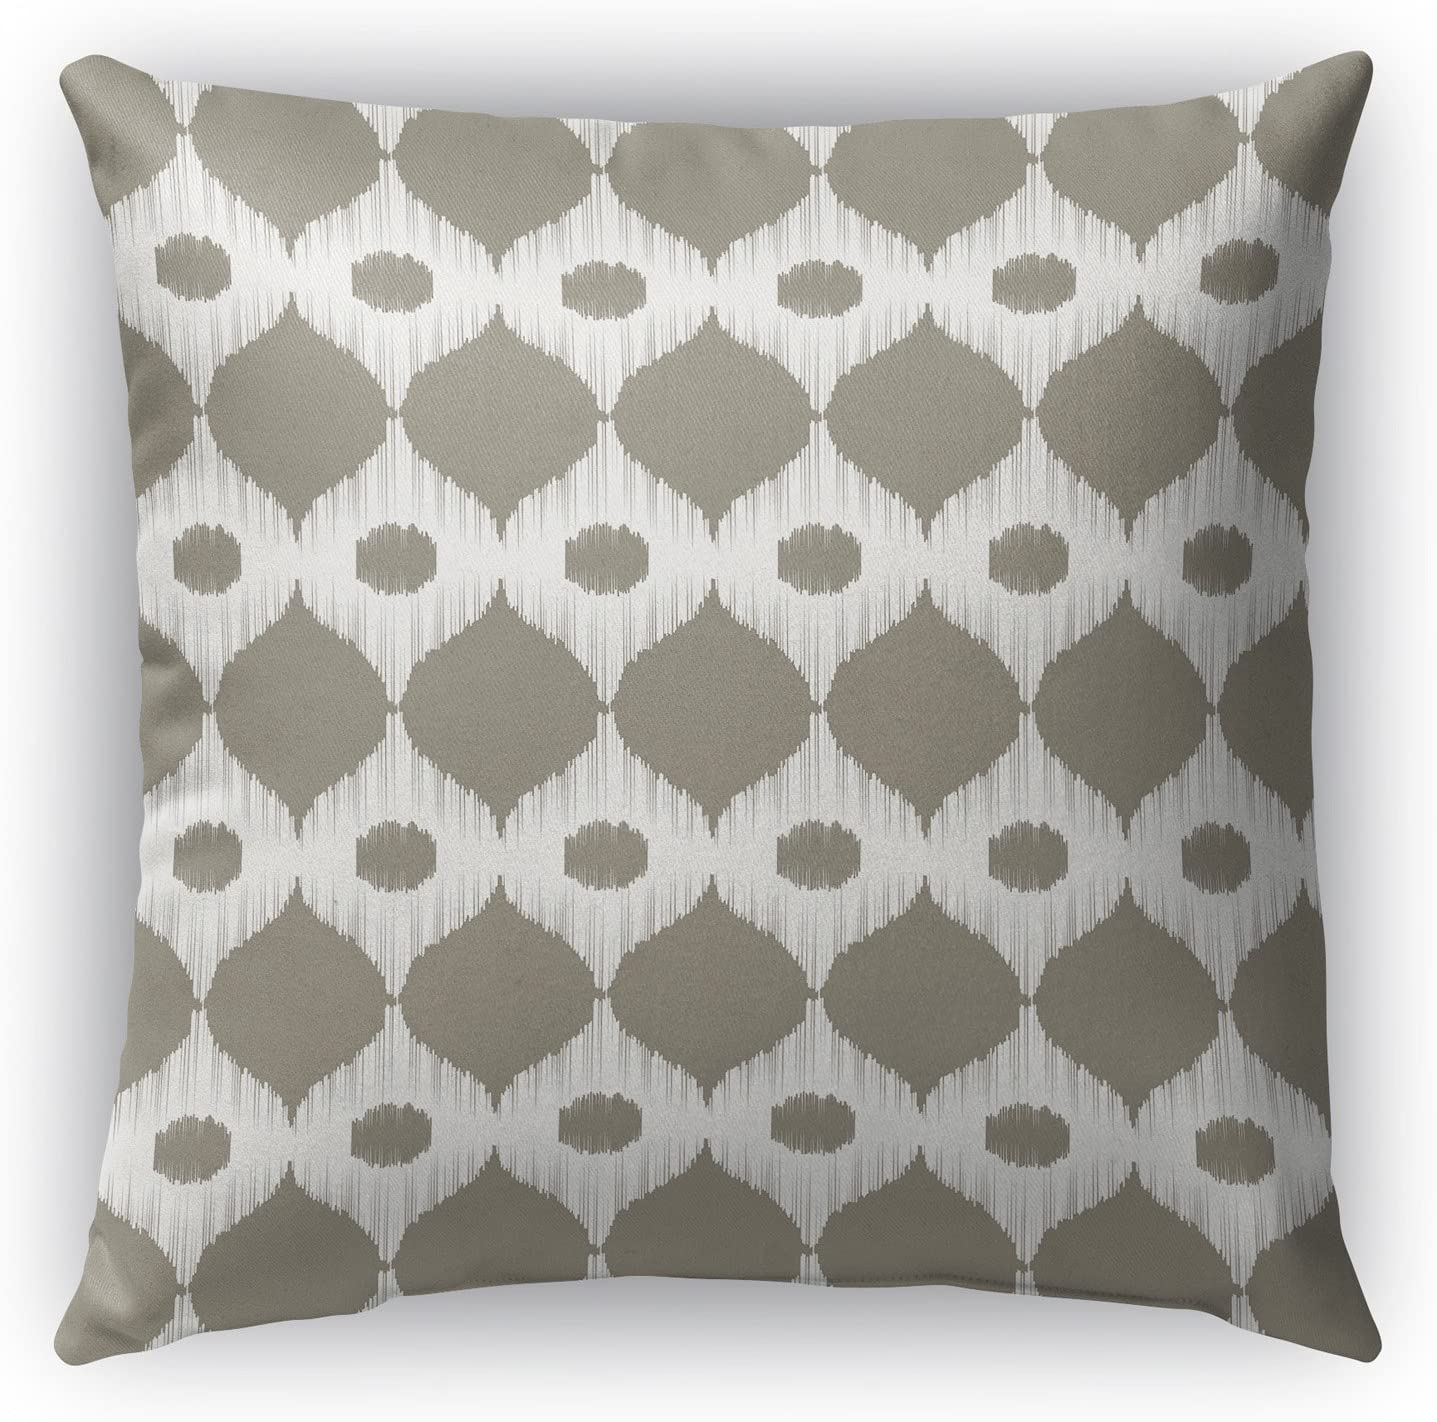 Brown//Ivory KAVKA Designs Forrest Rain Indoor-Outdoor Pillow, Size: 18X18X6 - MGTAVC2009OP18 - ENCOMPASS Collection